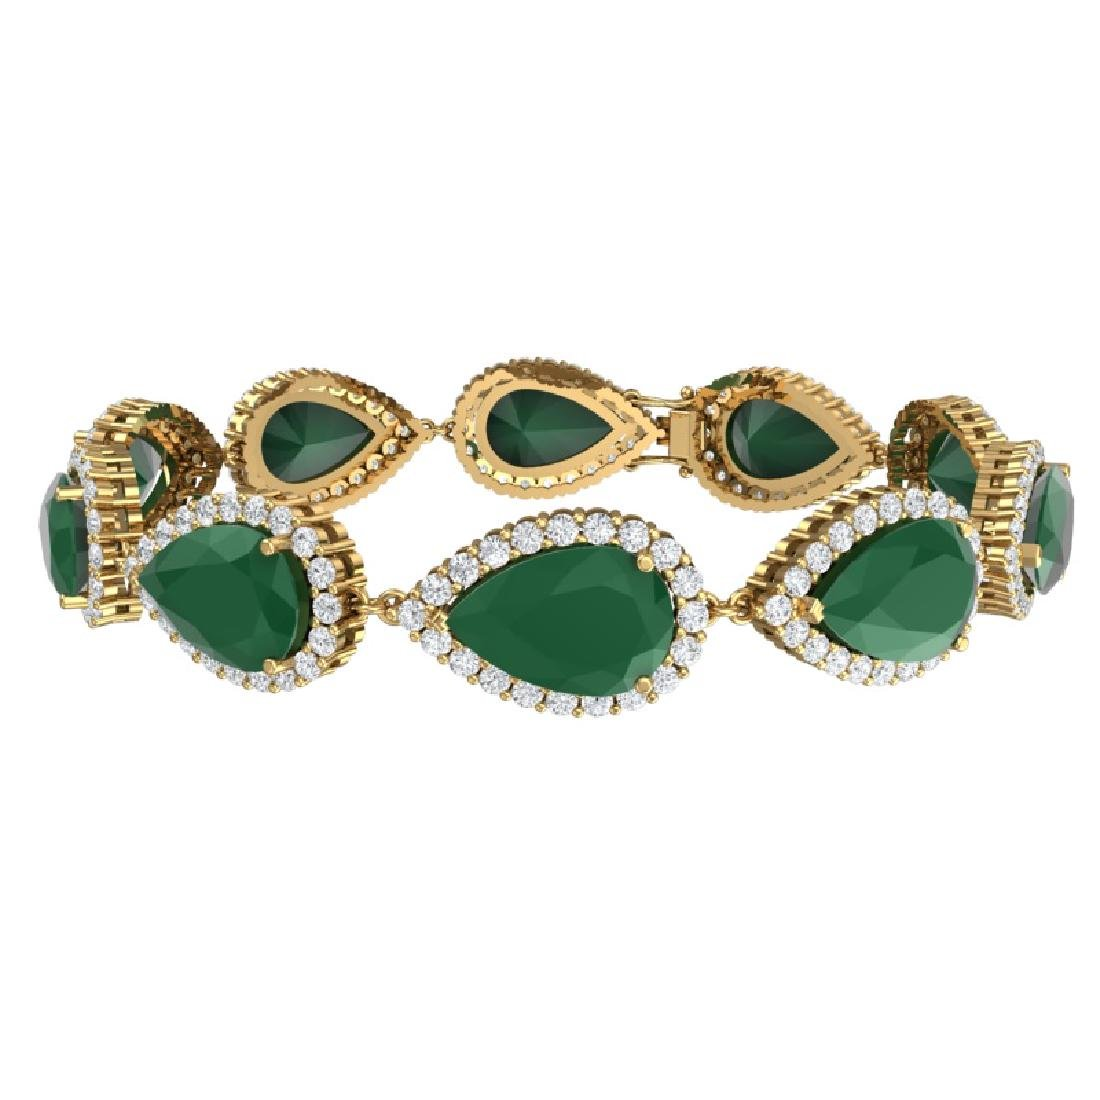 42 CTW Royalty Emerald & VS Diamond Bracelet 18K Yellow - 3